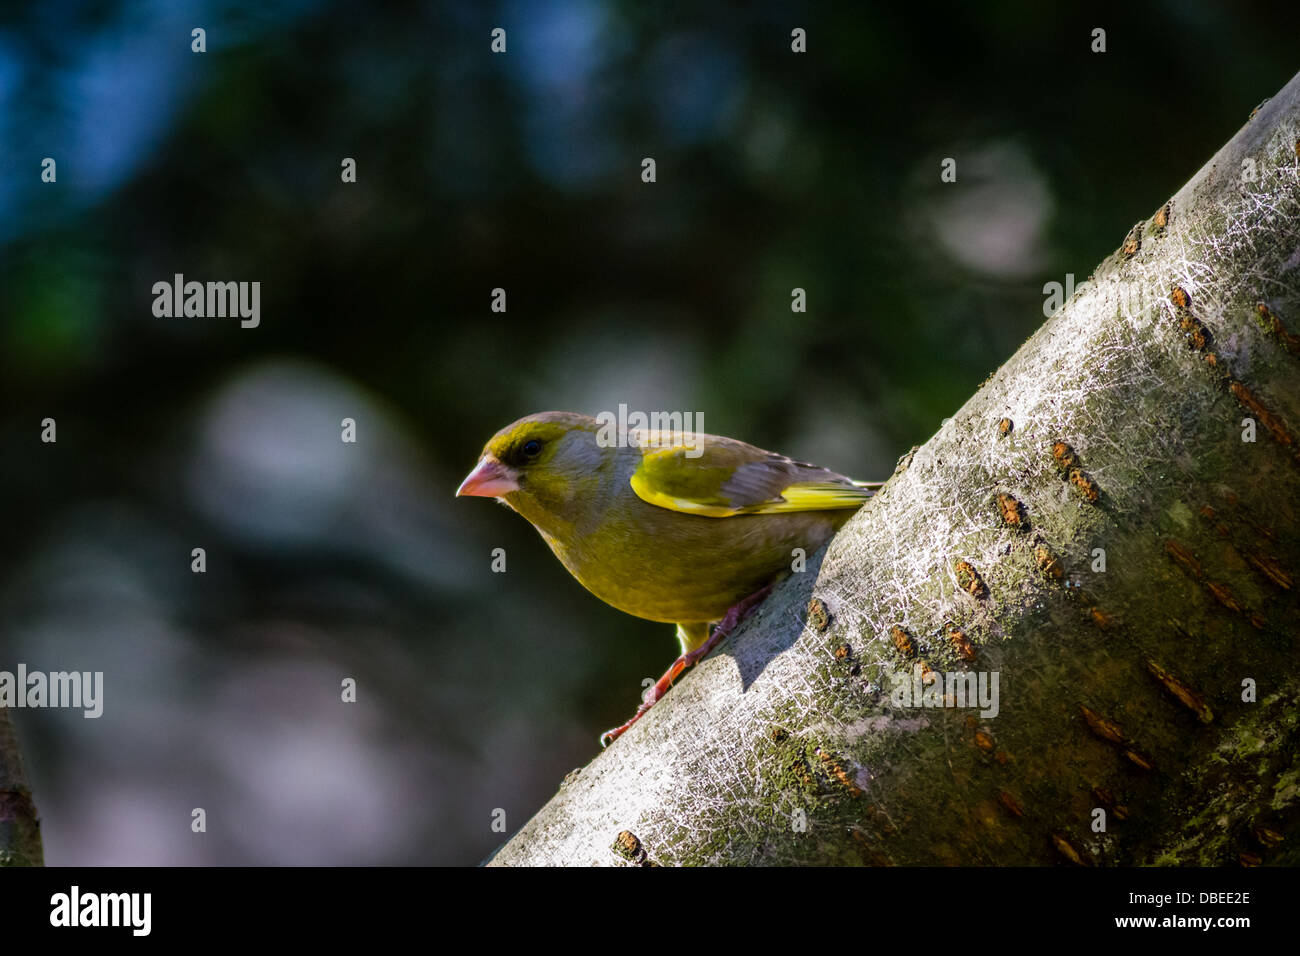 Greenfinch on a branch in the sunlight, Yorkshire, UK - Stock Image